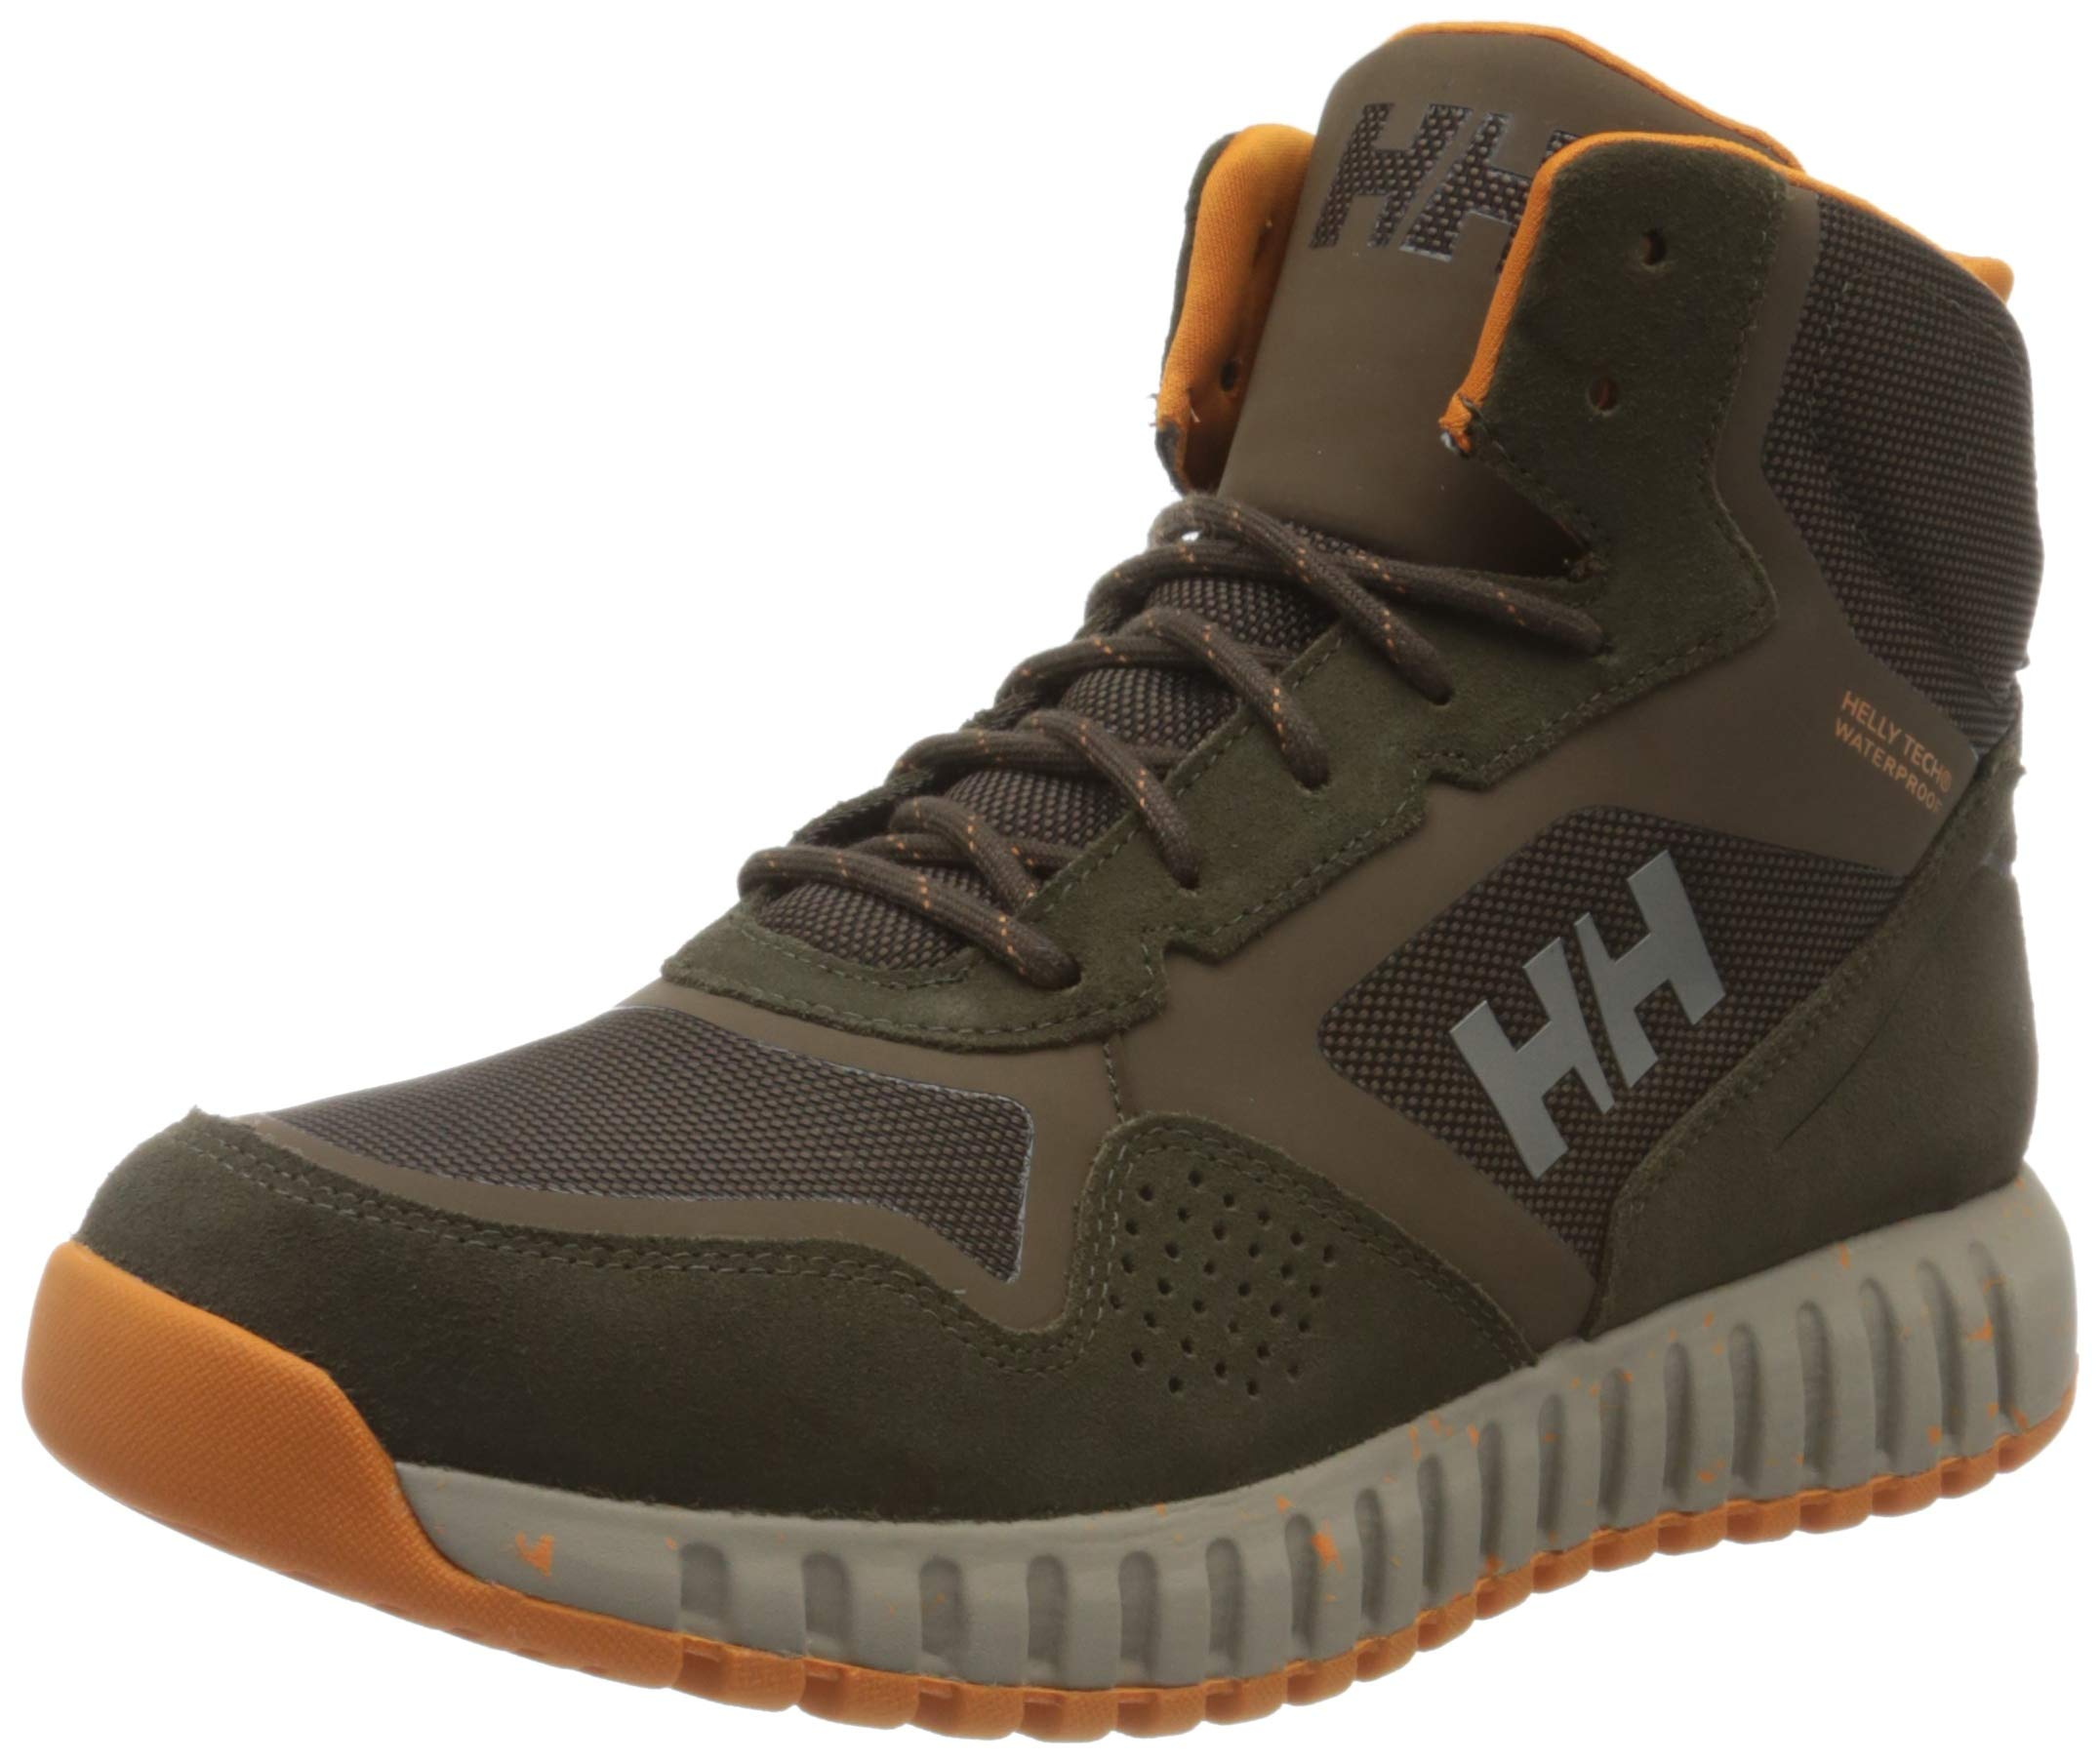 Helly-Hansen Men's Low Rise Hiking Boots